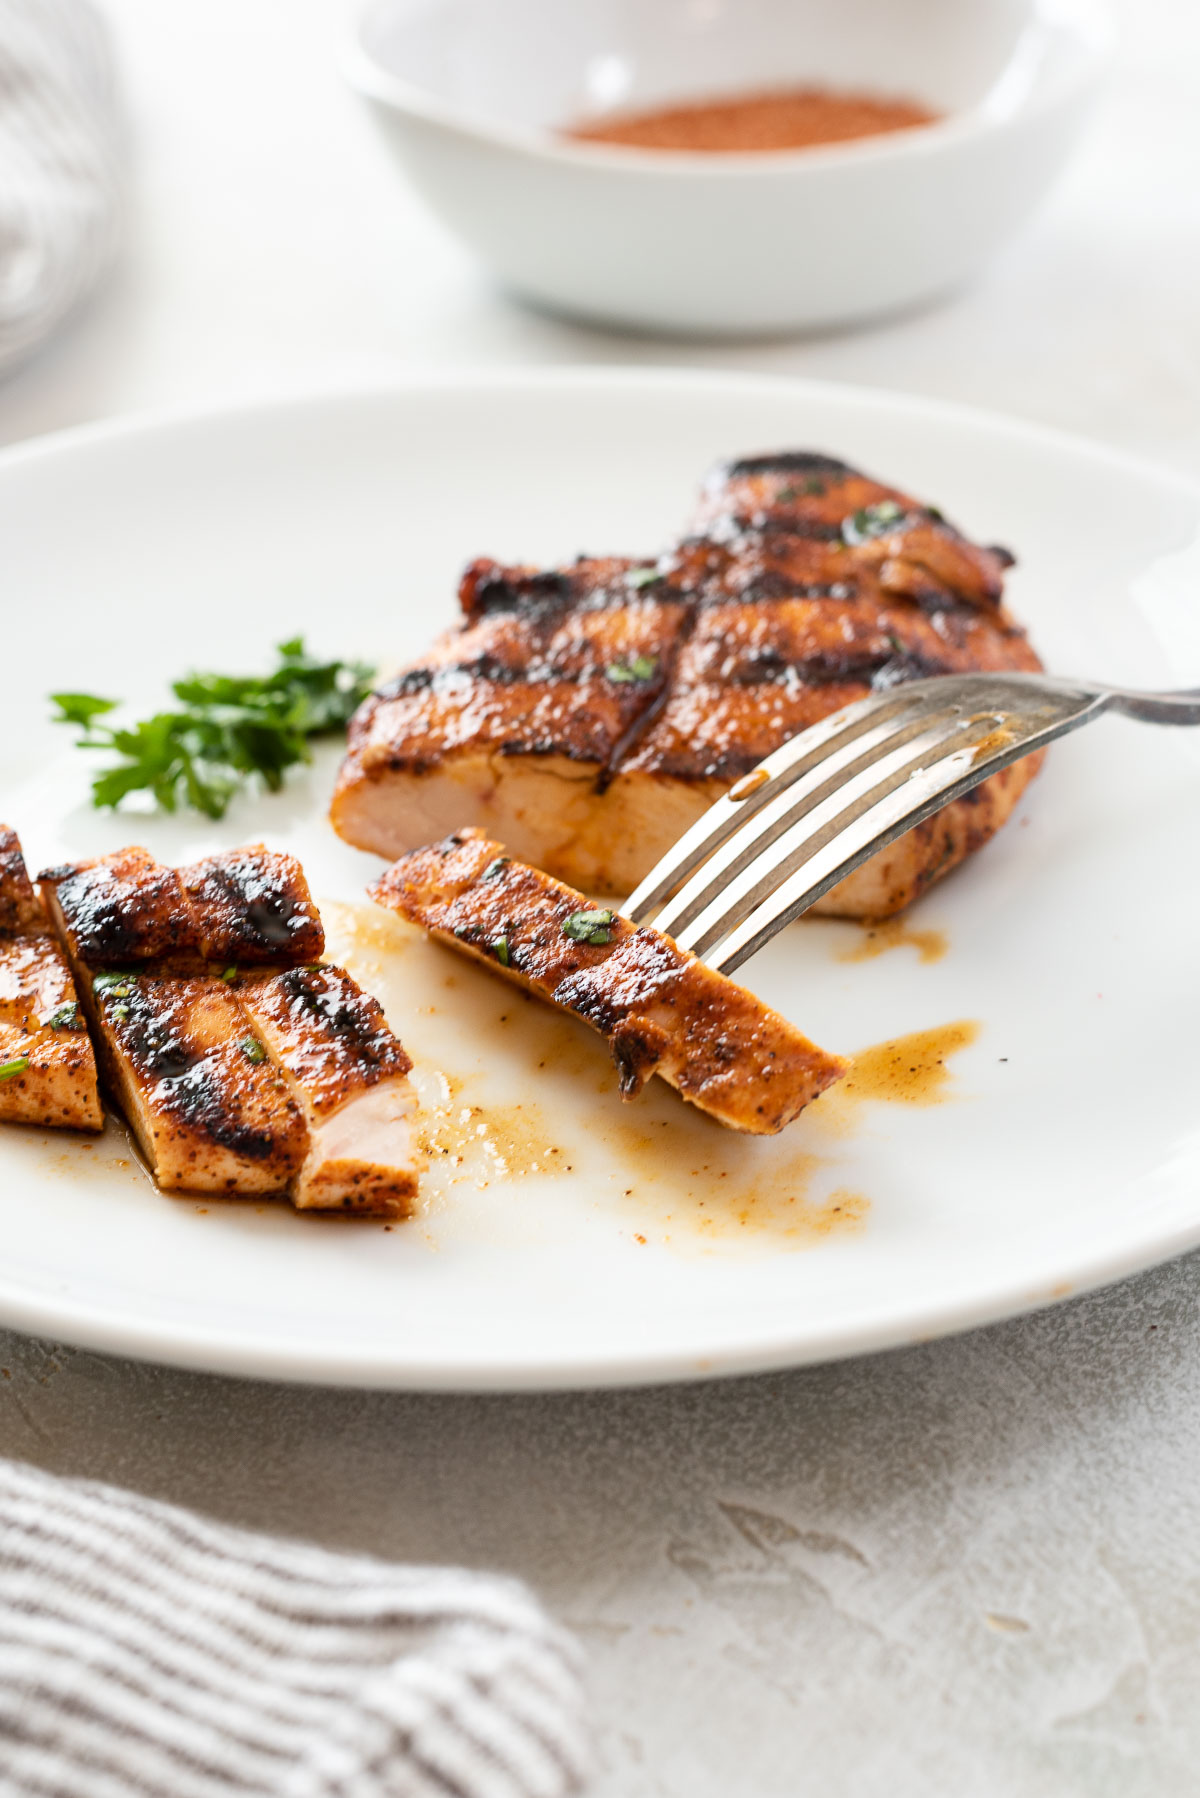 Slice of grilled chicken with bbq rub on fork